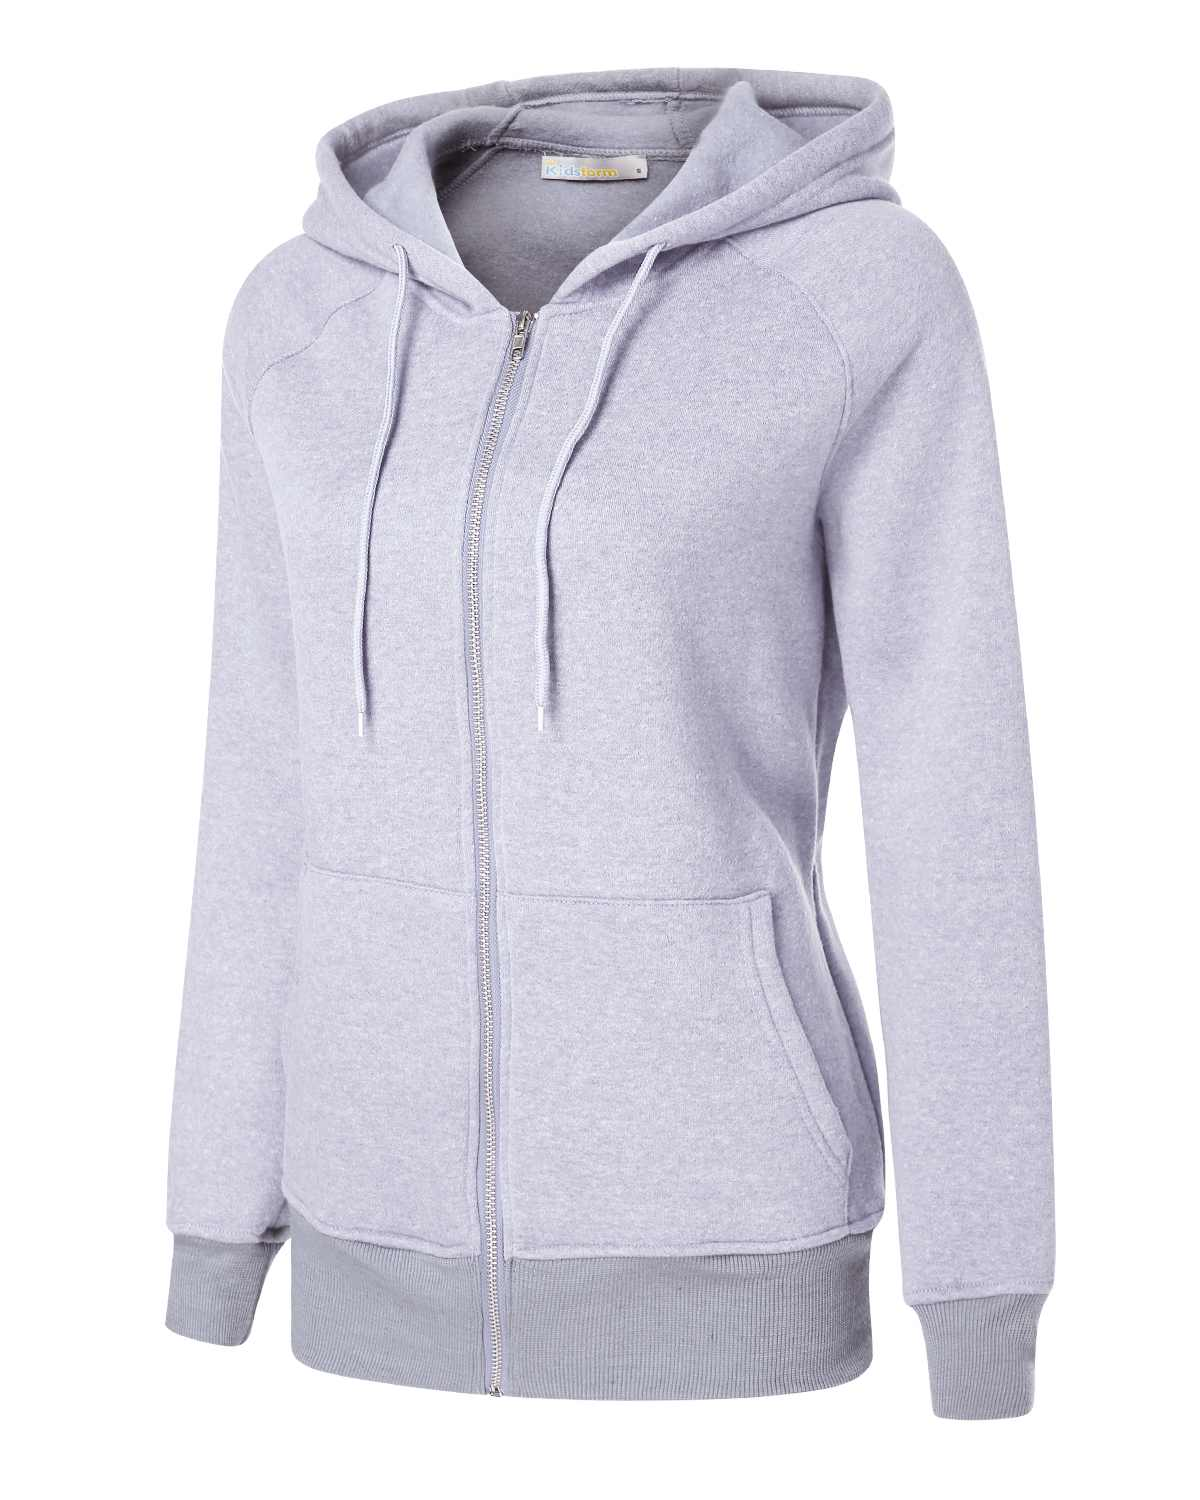 Women Warm Hoodies Sweatshirt Casual Loose Long Sleeve Hooded Sweatshirt Overcoat Solid Color Zipper Design Hoodies Plus Size